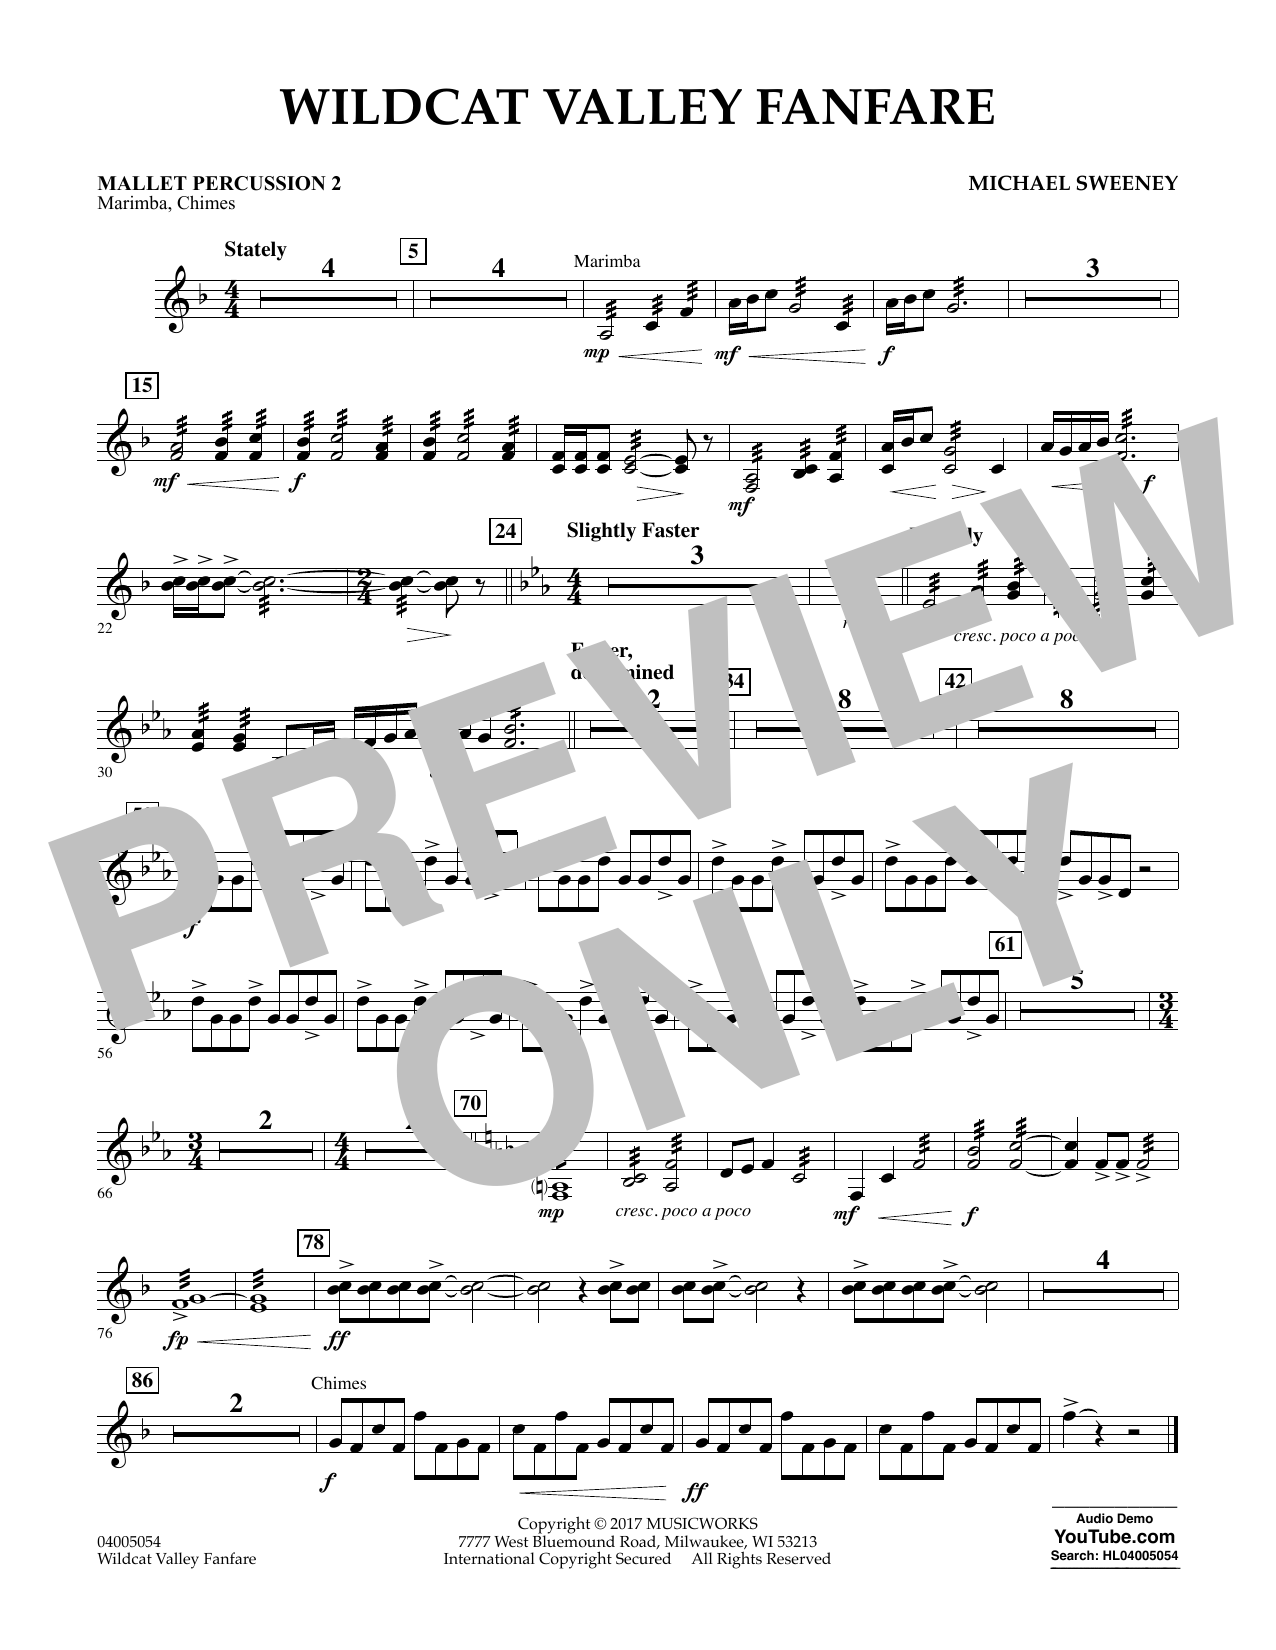 Wildcat Valley Fanfare - Mallet Percussion 2 Sheet Music